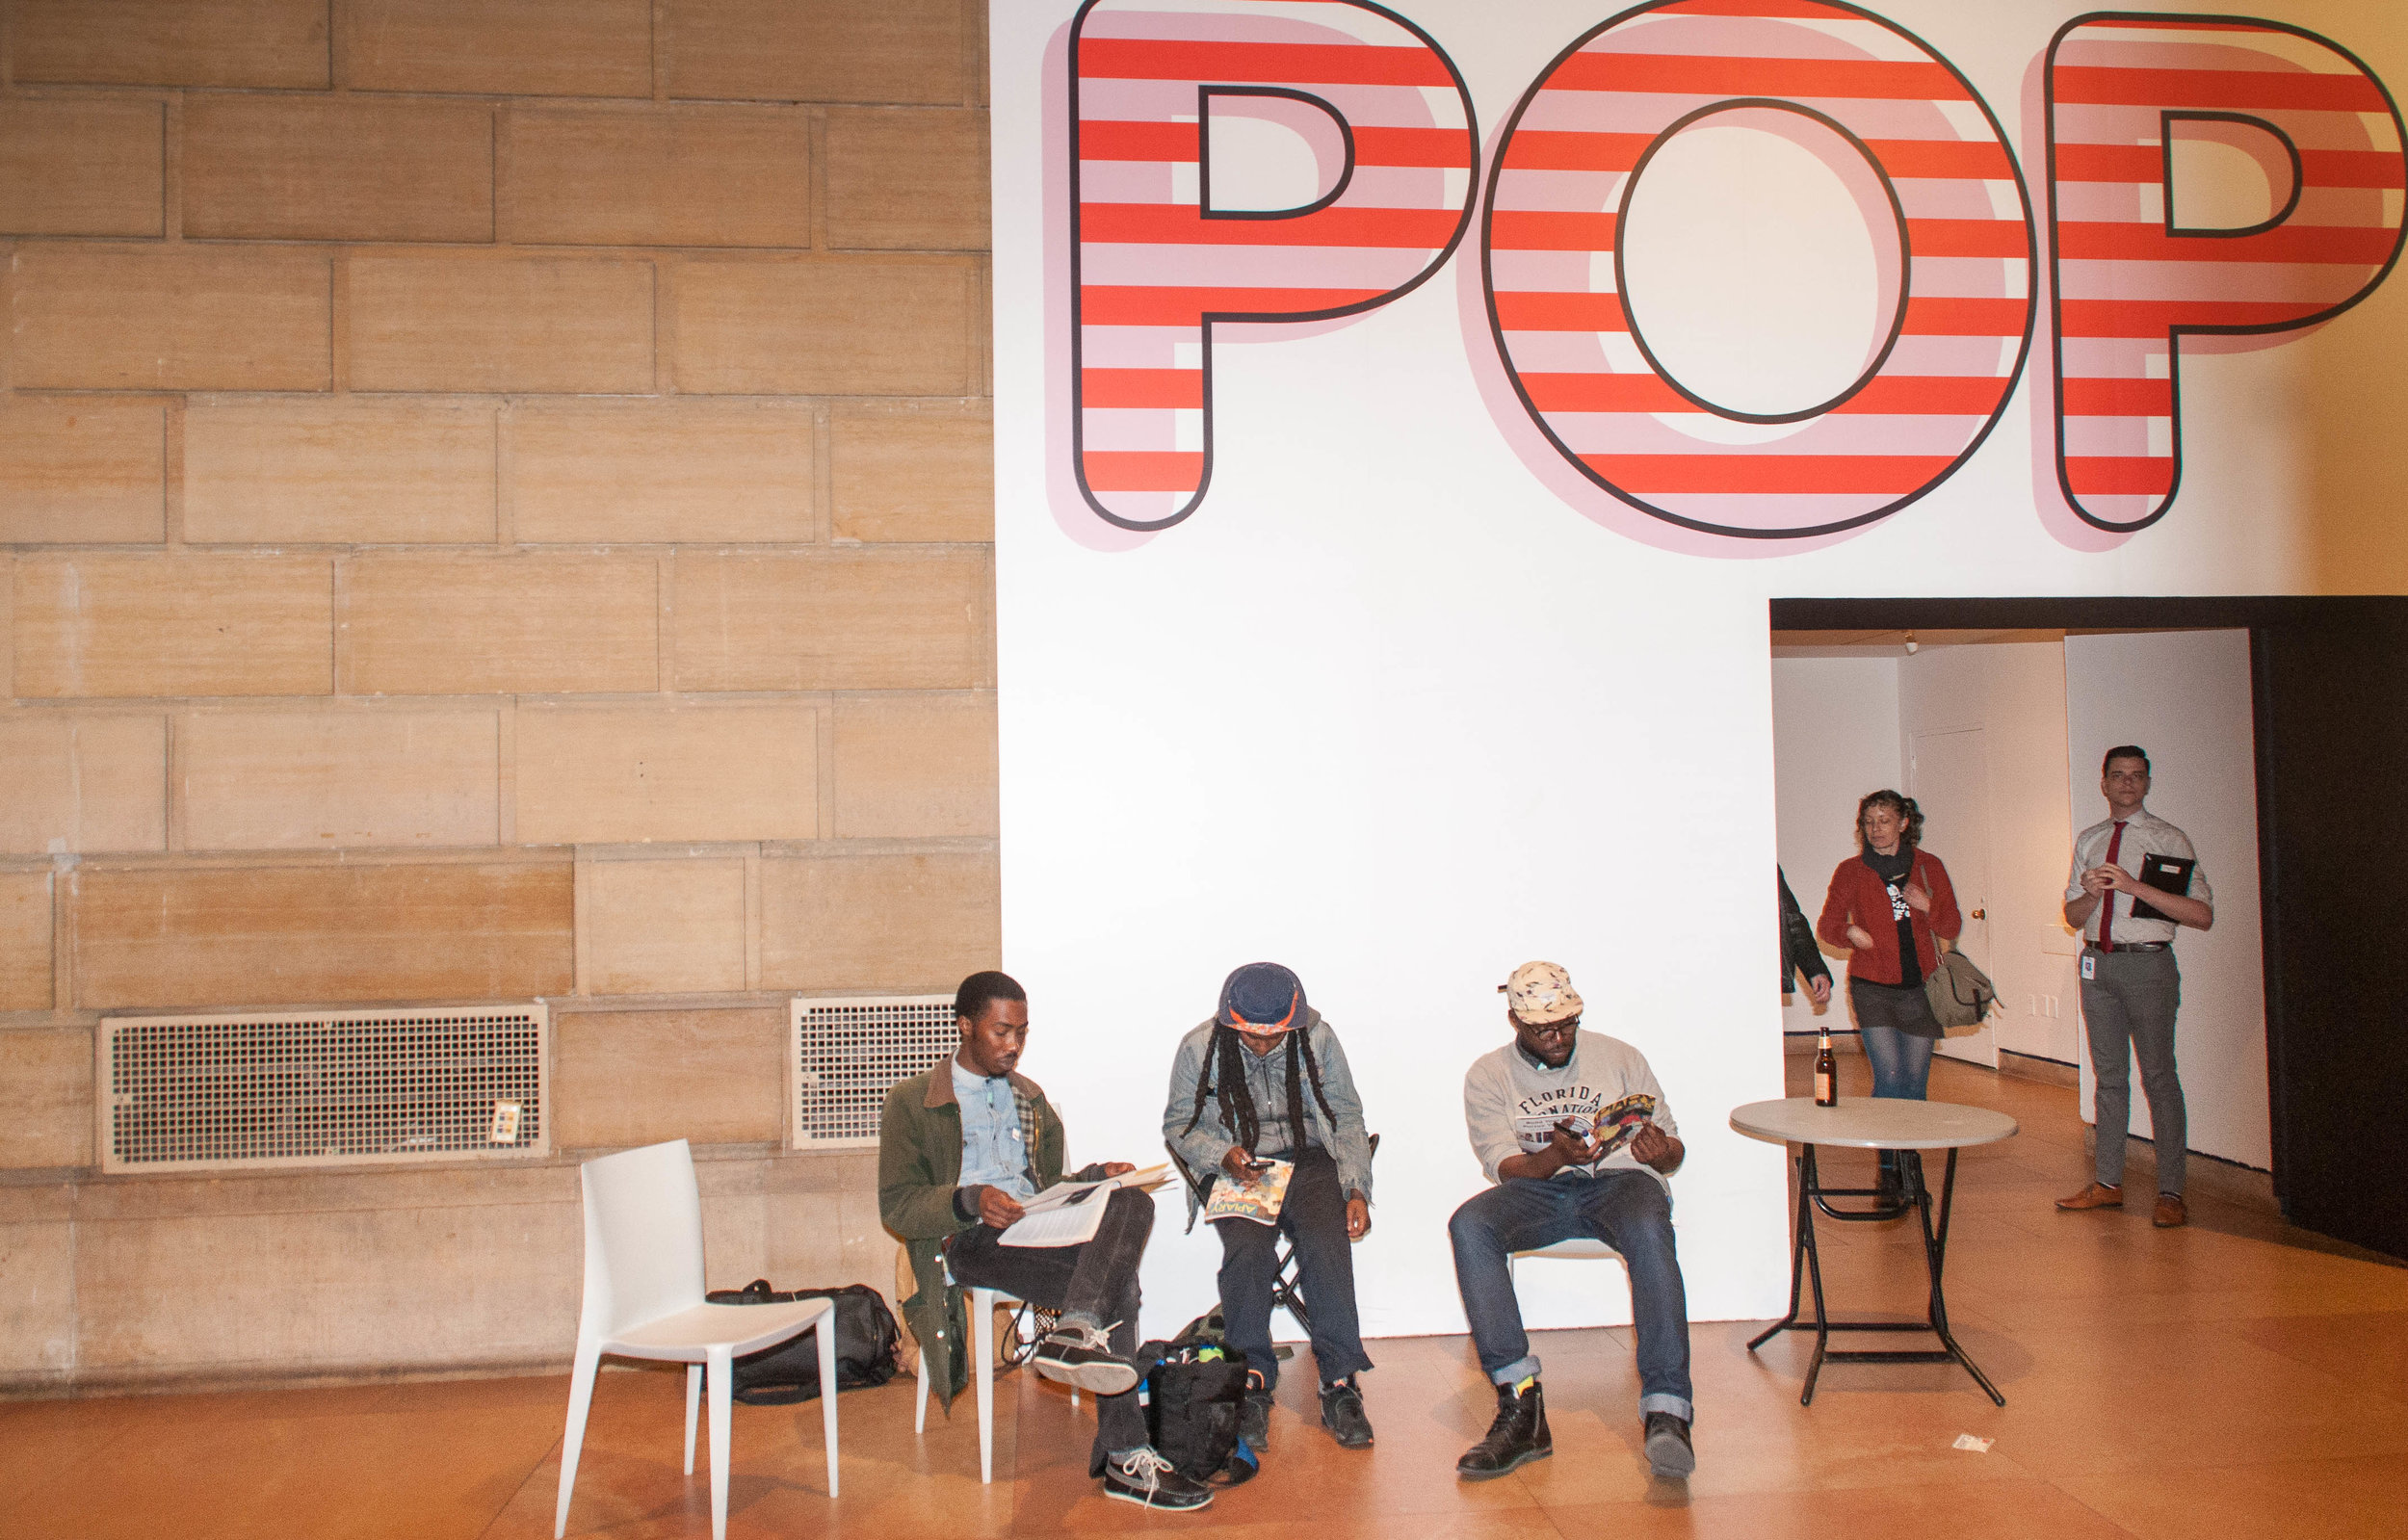 Visitors to the City of Poetry chill outside the museum's pop culture exhibition.